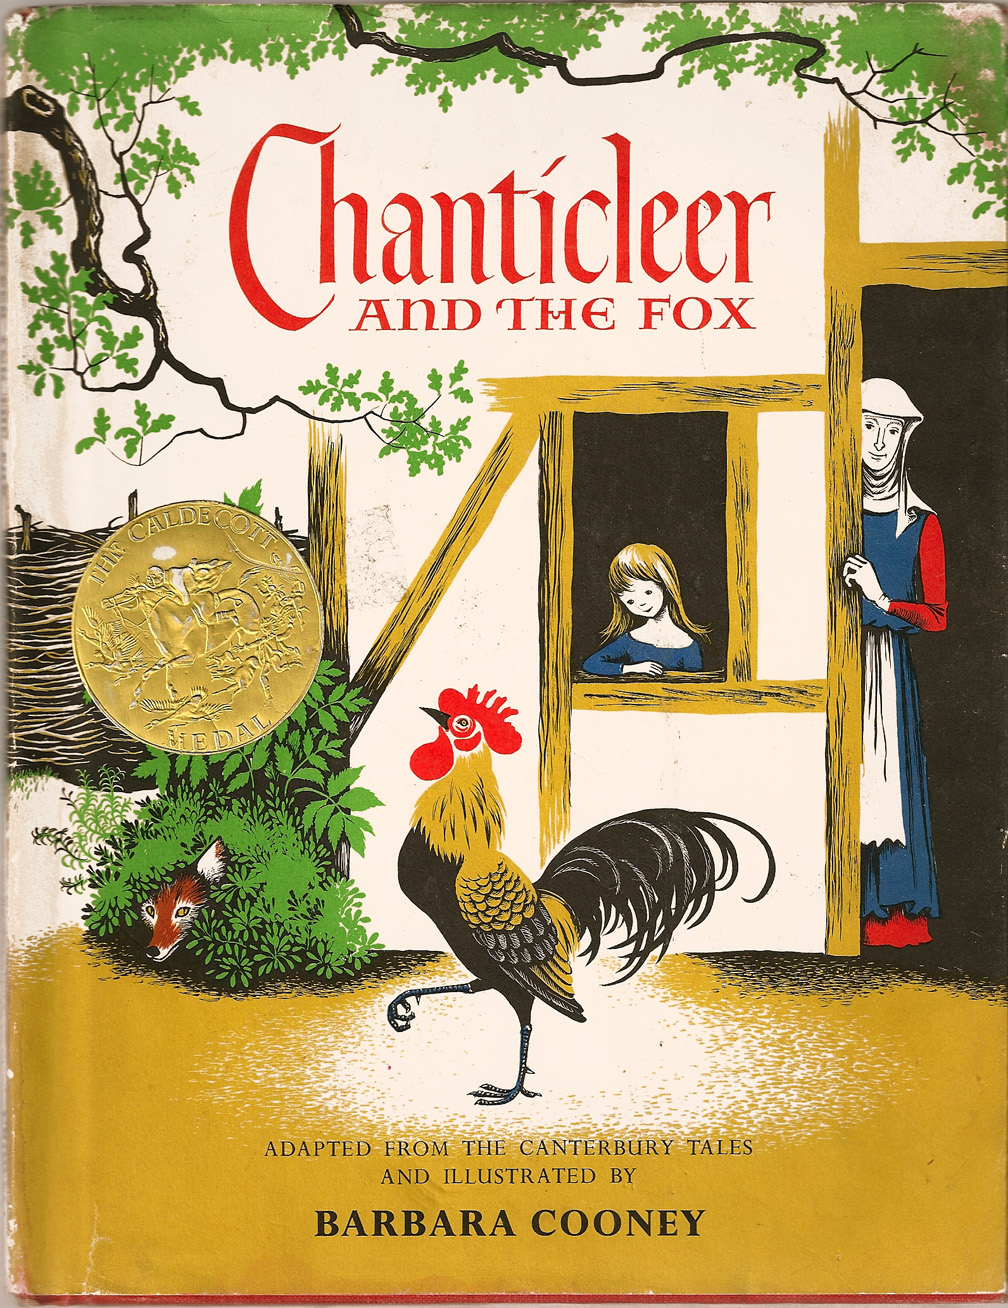 The art of children 39 s picture books good book cover design for The chanticleer